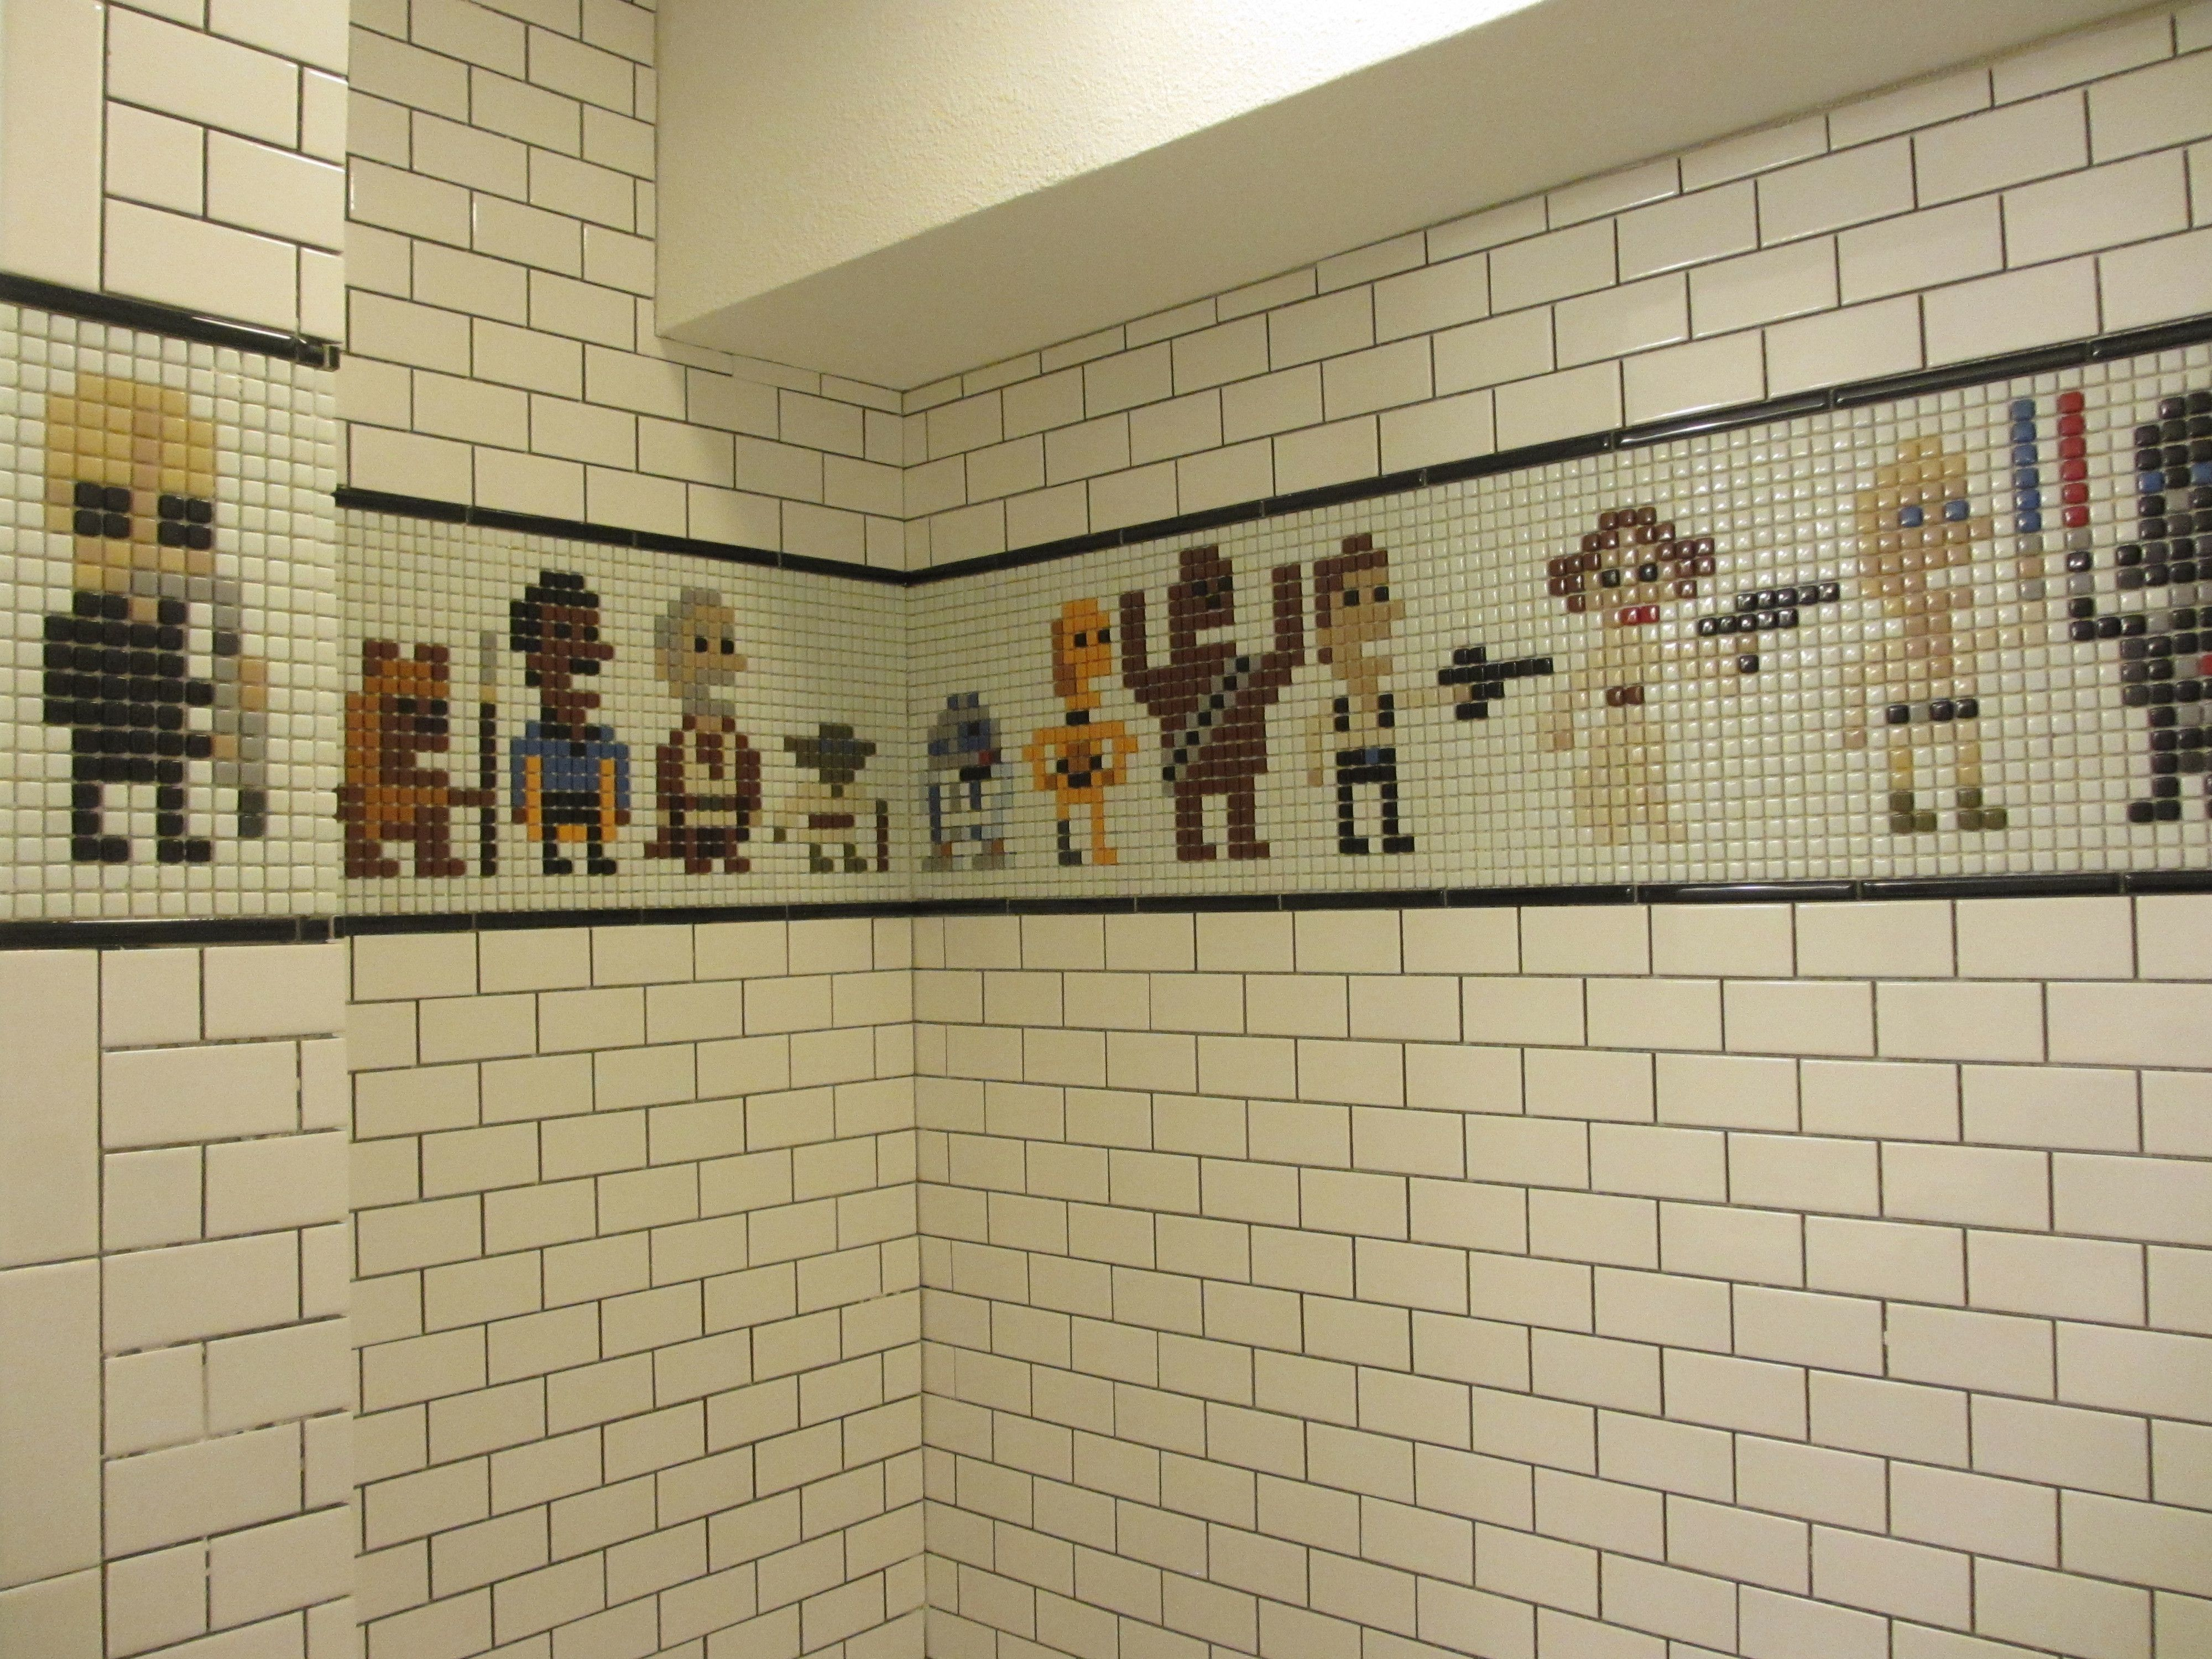 finished my basement bathroom with a star wars pixel art shower